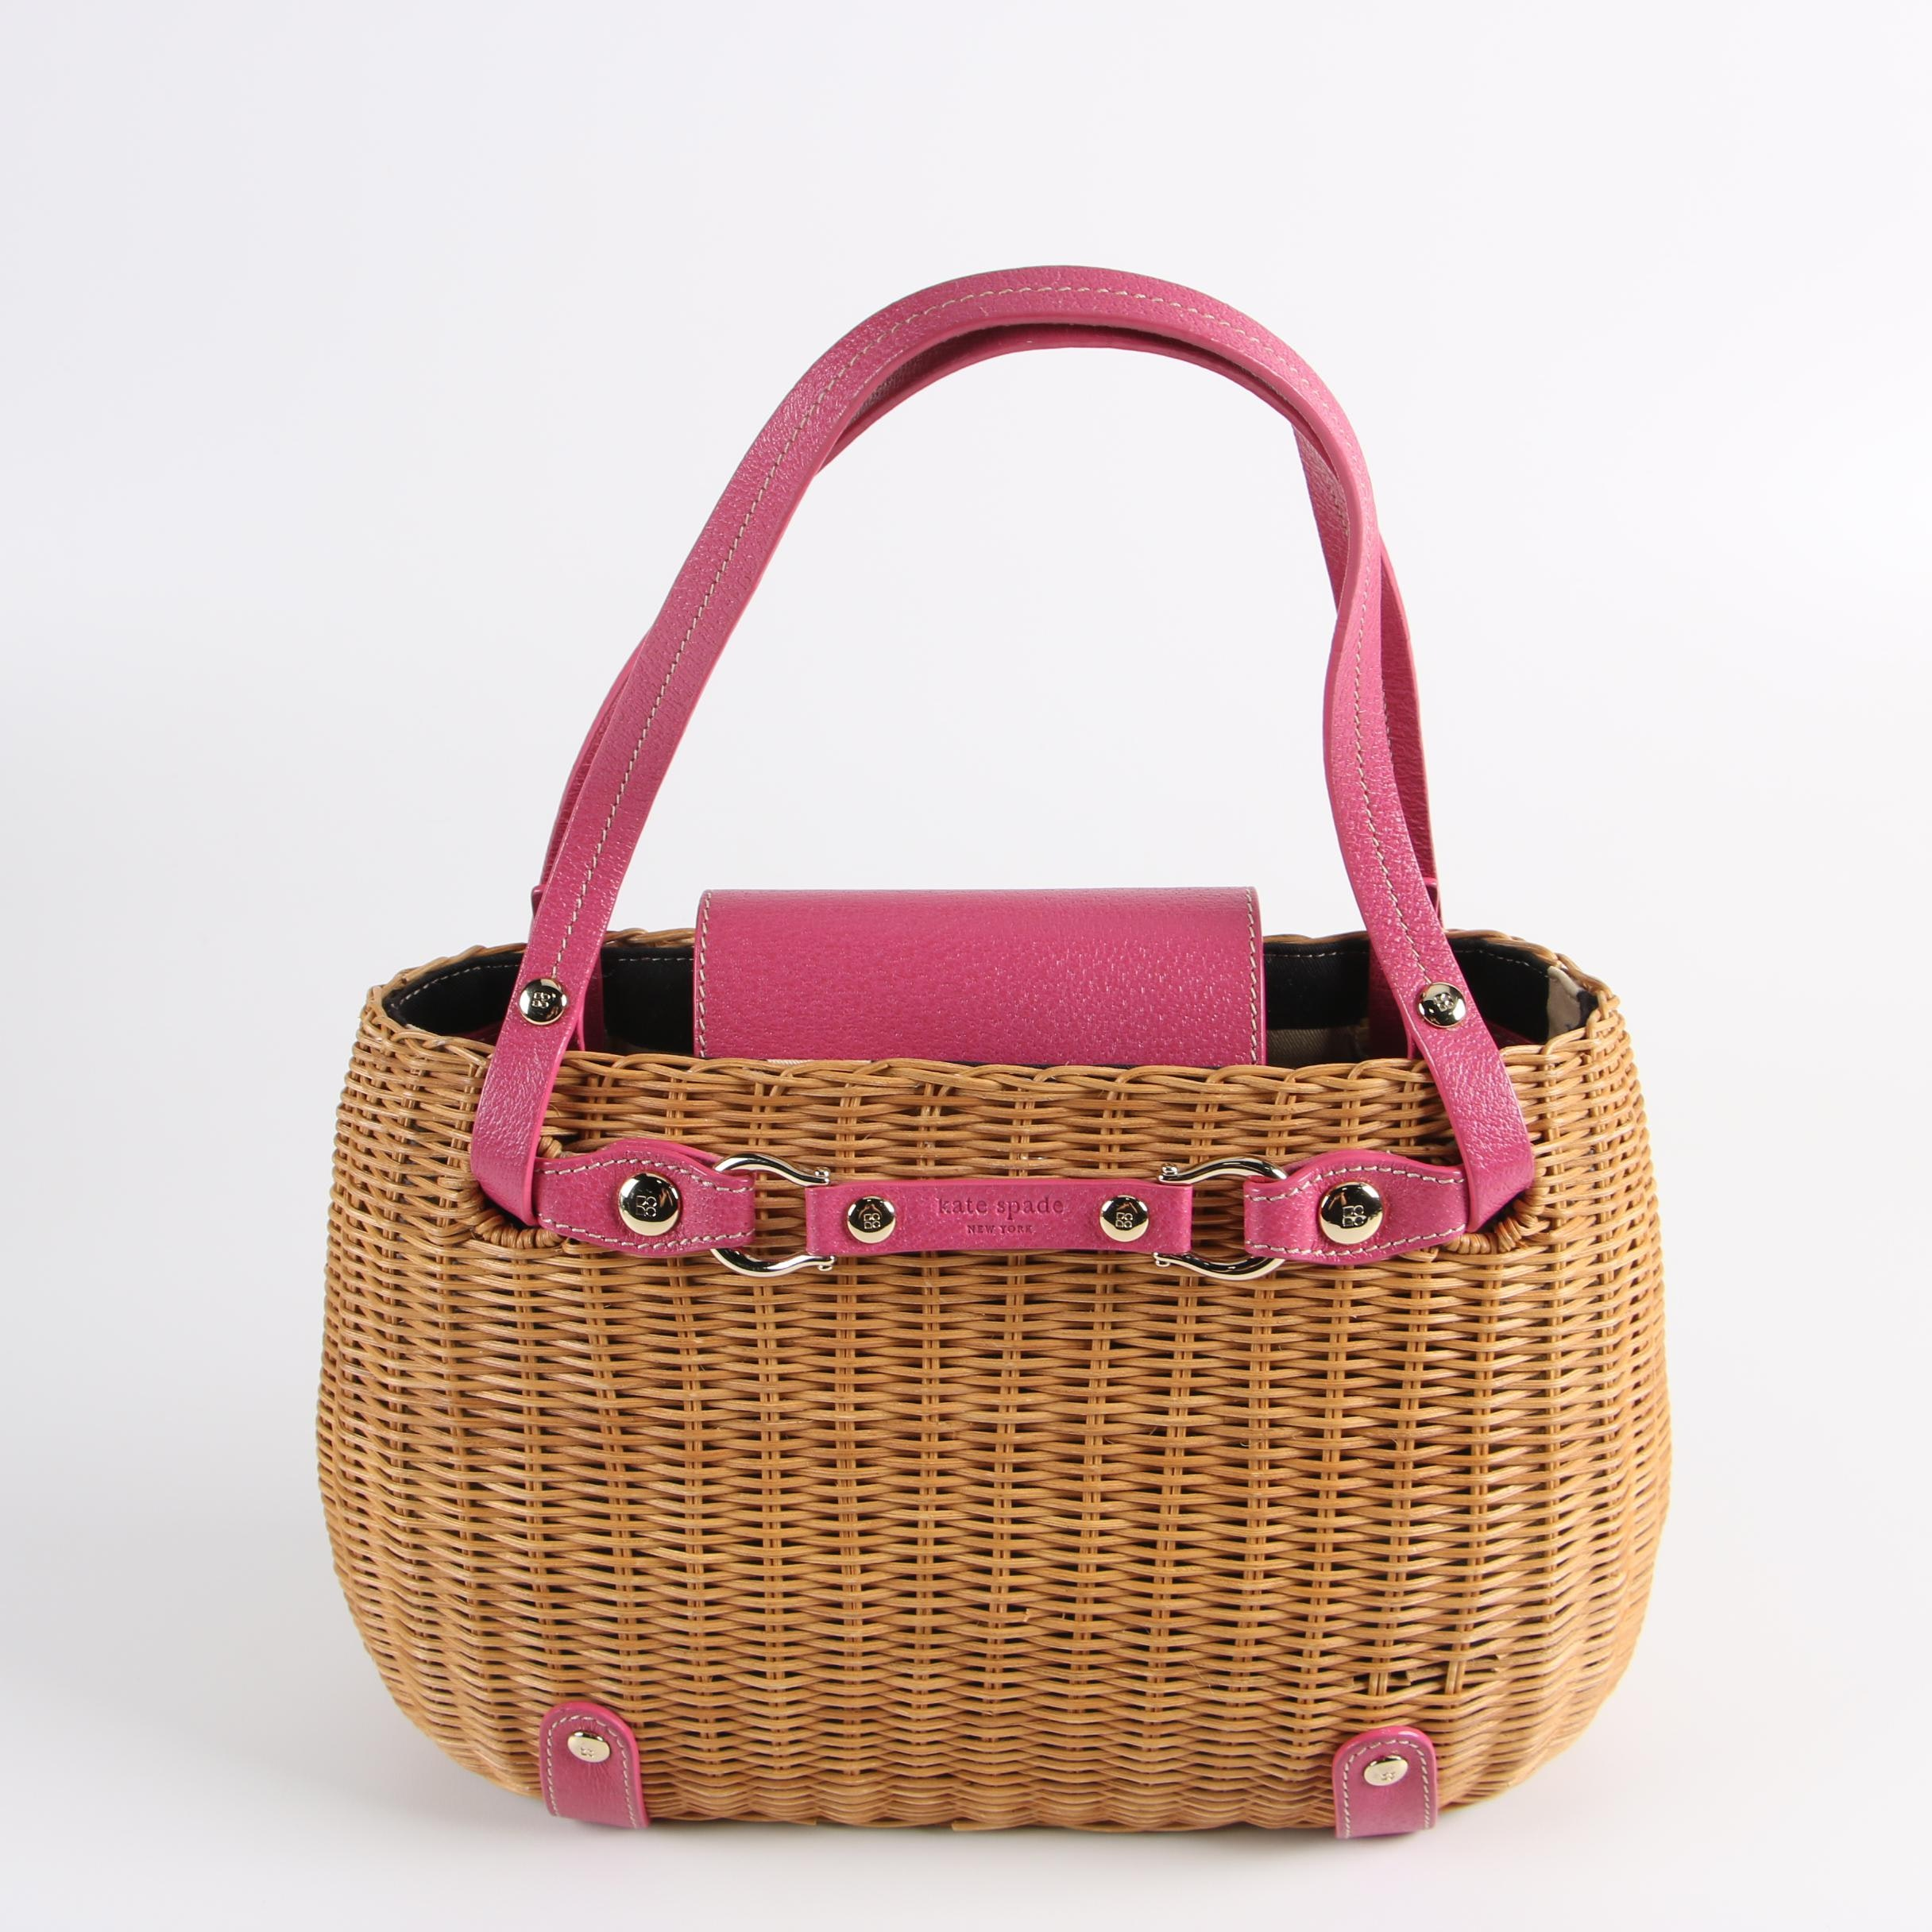 Kate Spade New York Woven Wicker and Fuchsia Leather Tote Shoulder Bag